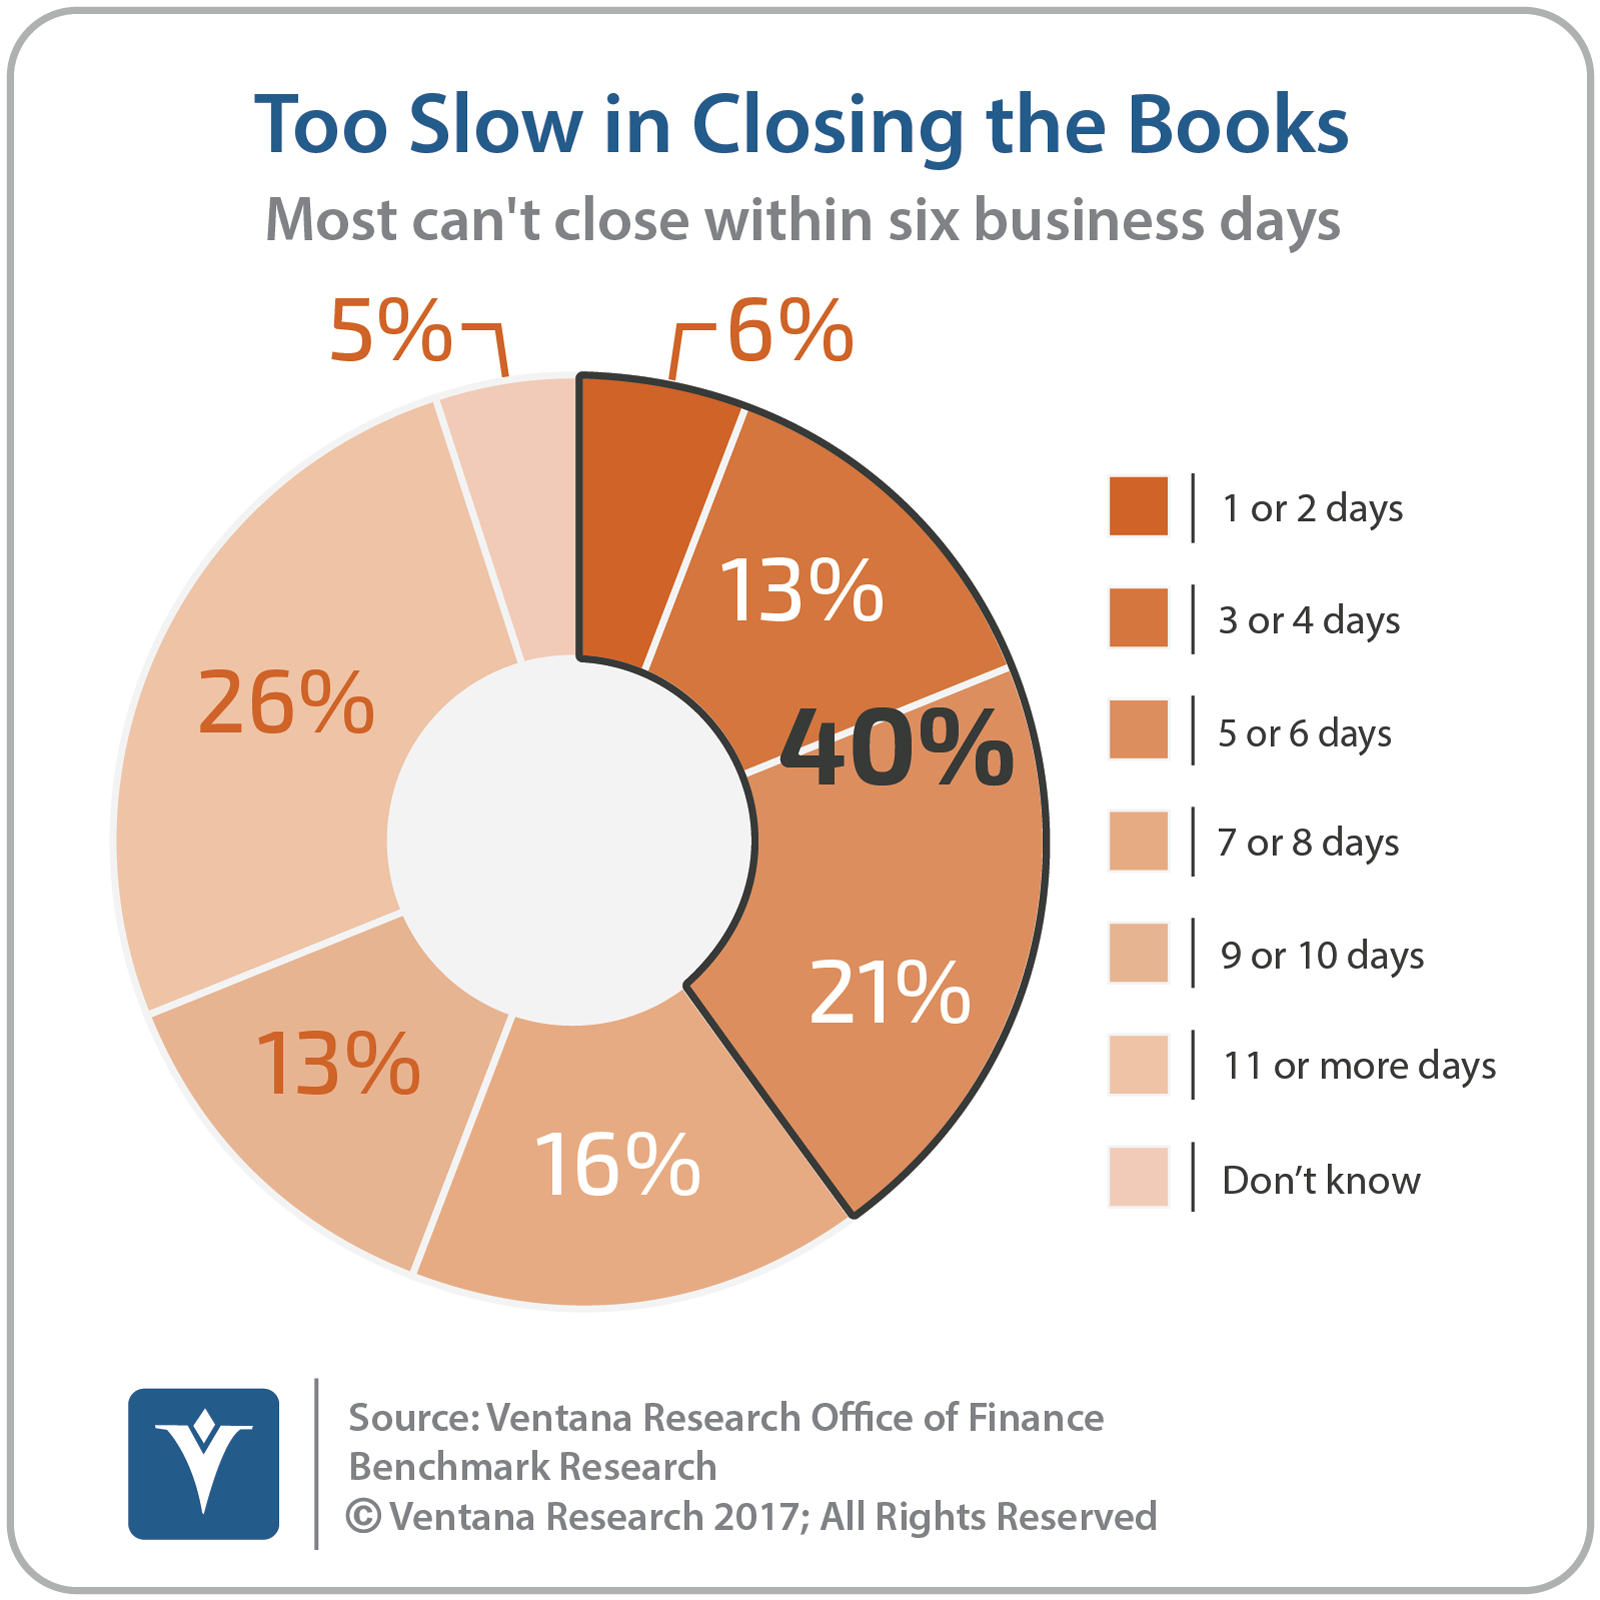 vr_Office_of_Finance_08_it_takes_too_long_to_close_the_books_updated.png